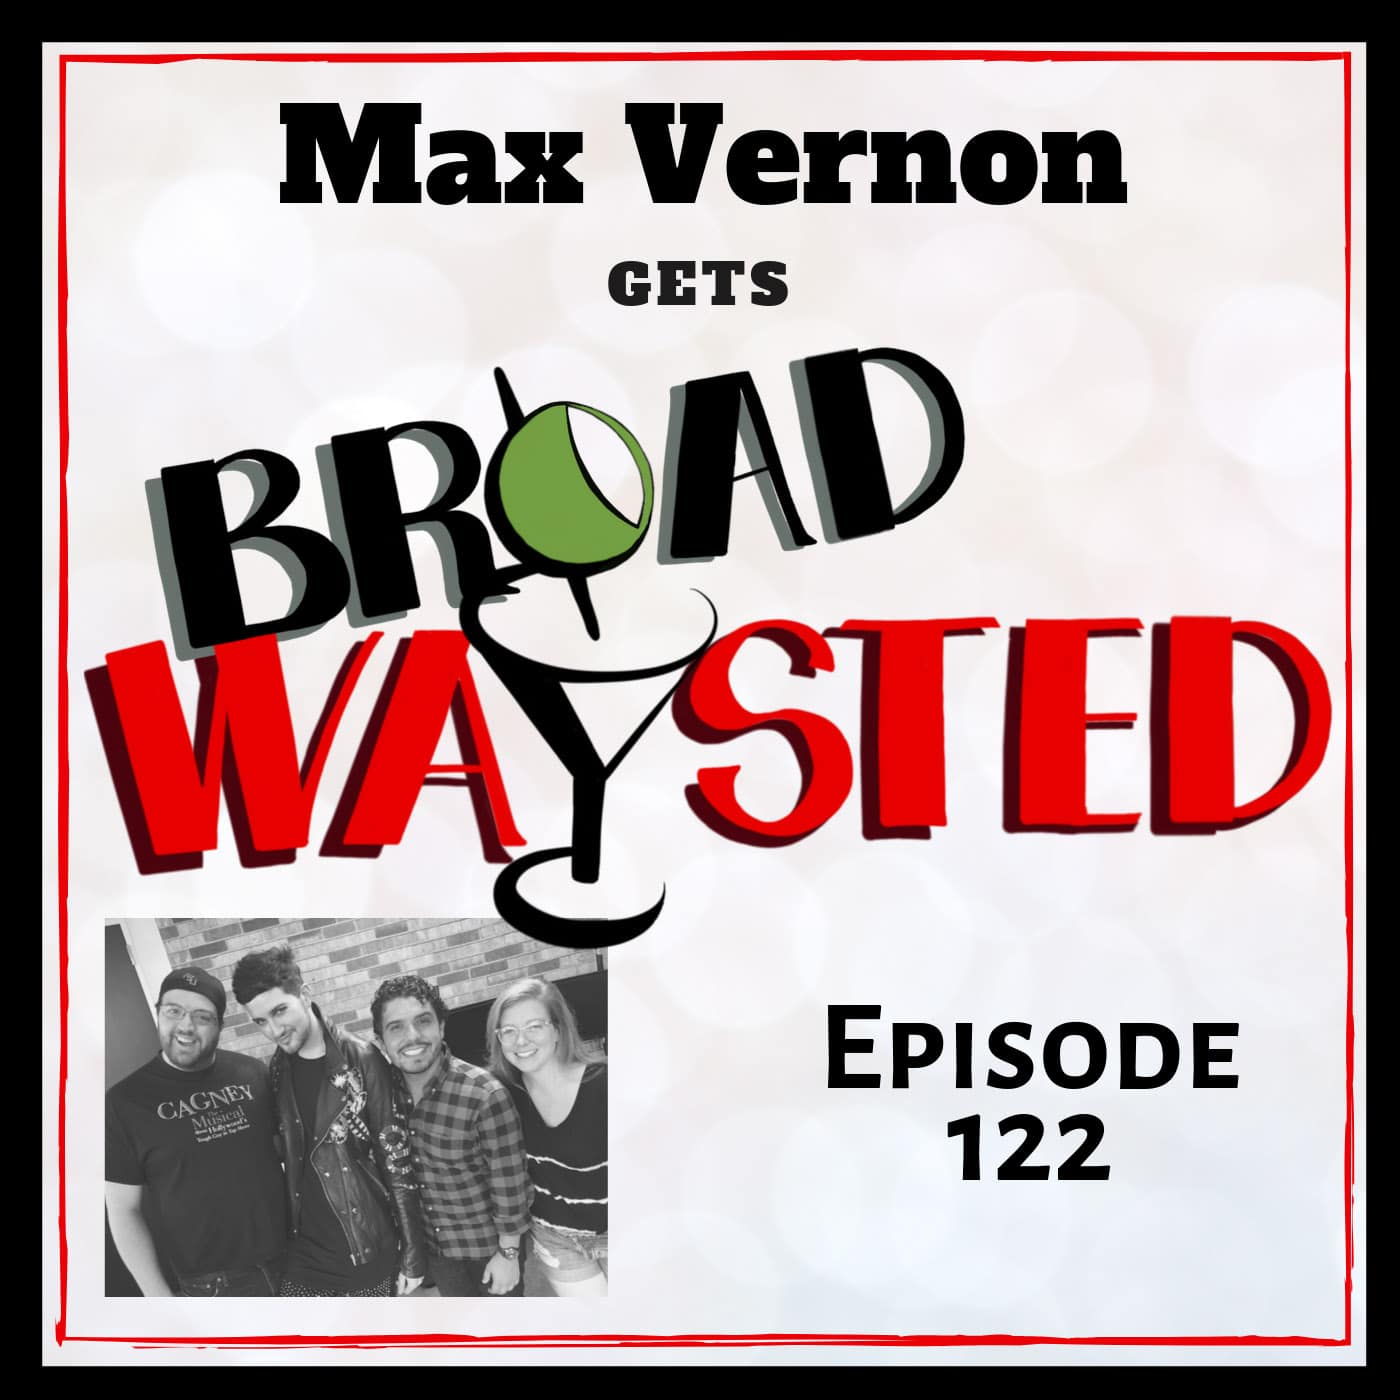 Broadwaysted Ep 122 Max Vernon